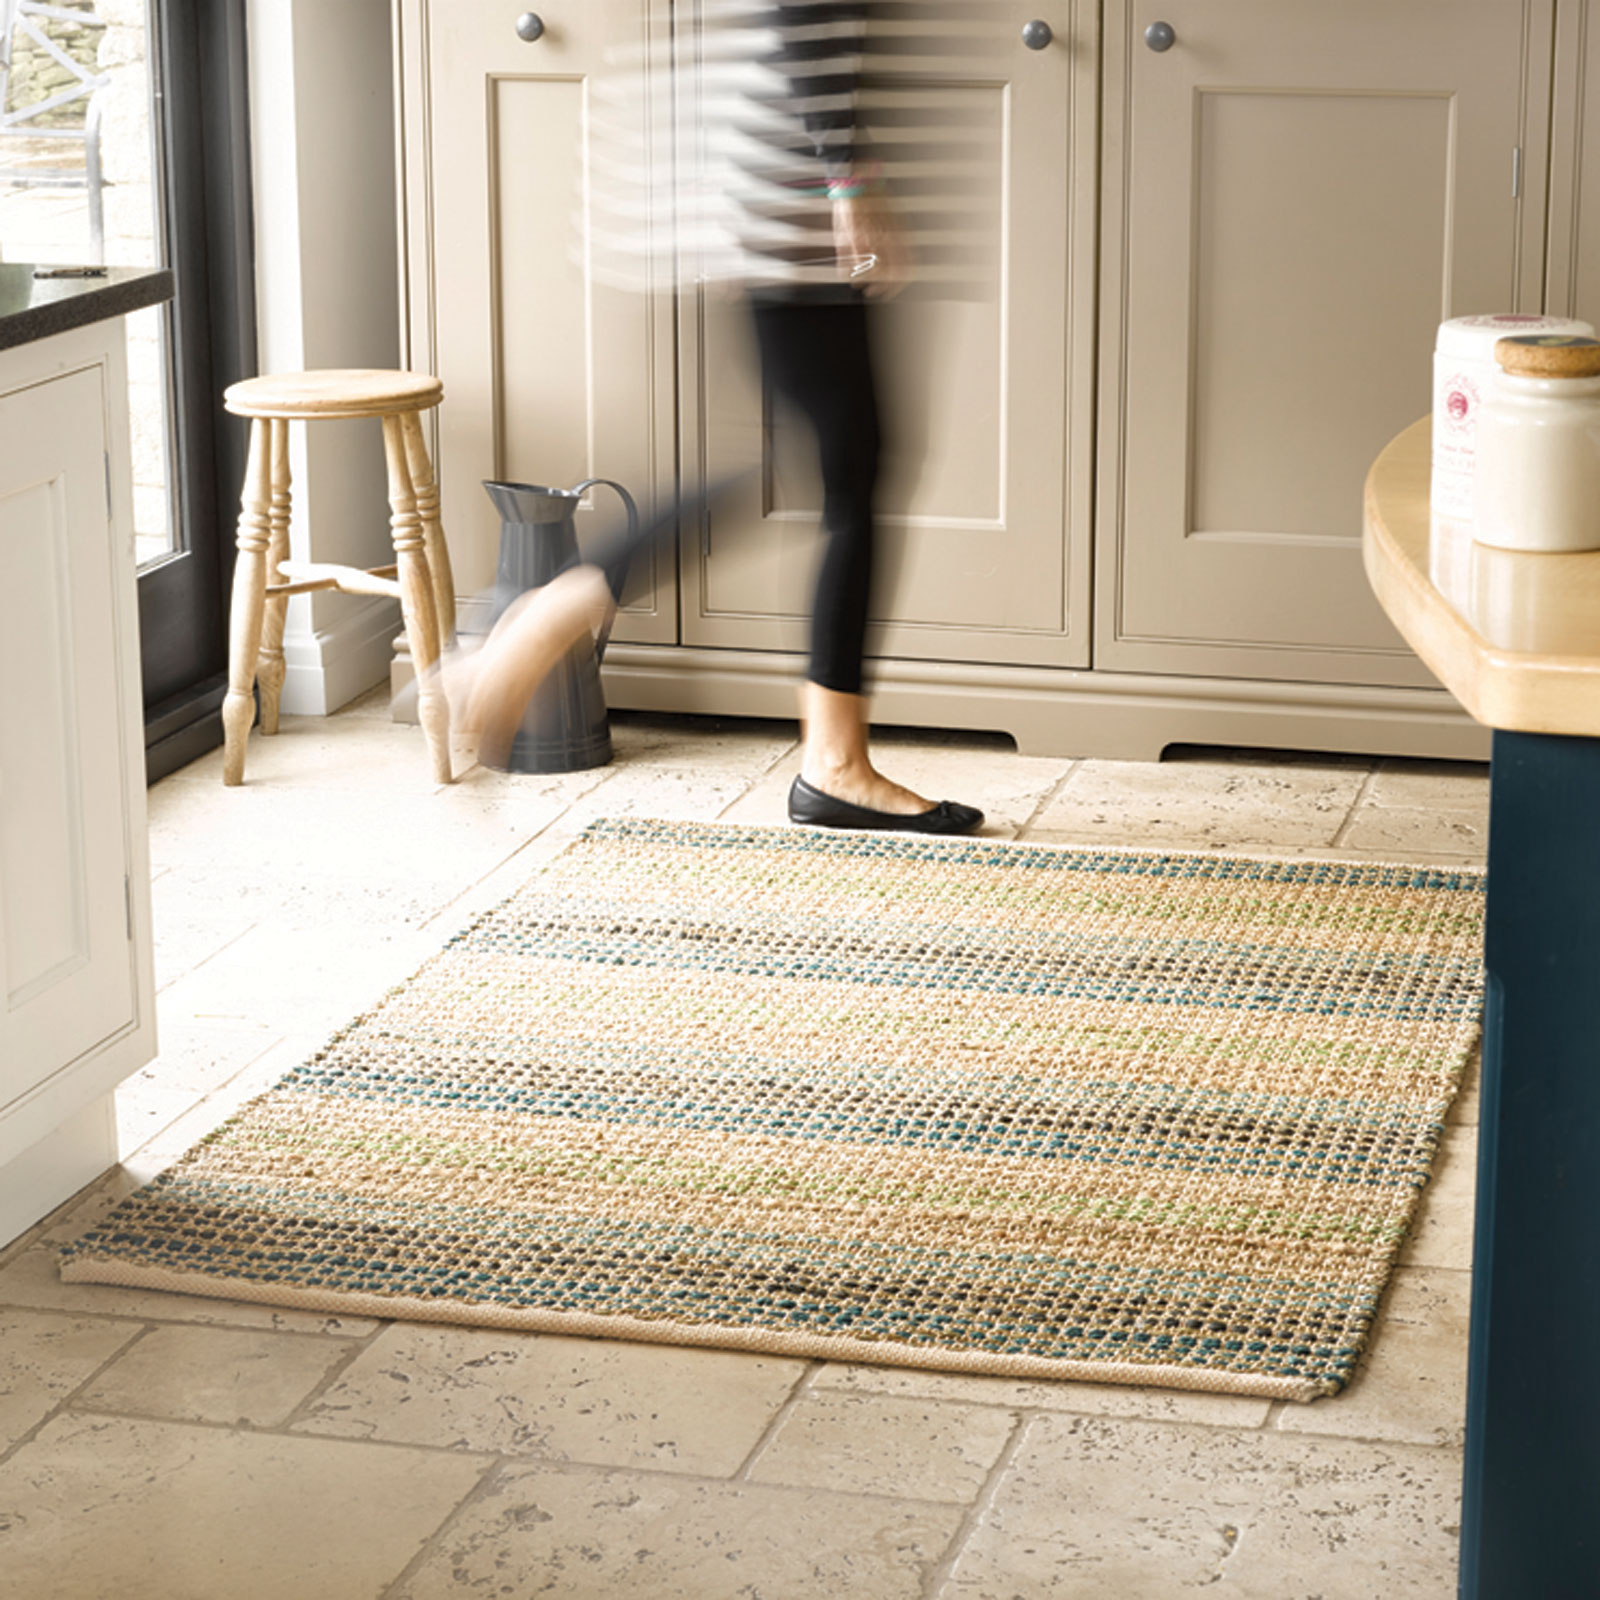 Kitchen Floor Mats Uk Natural Living Seagrass Rugs In Blue Green Free Uk Delivery